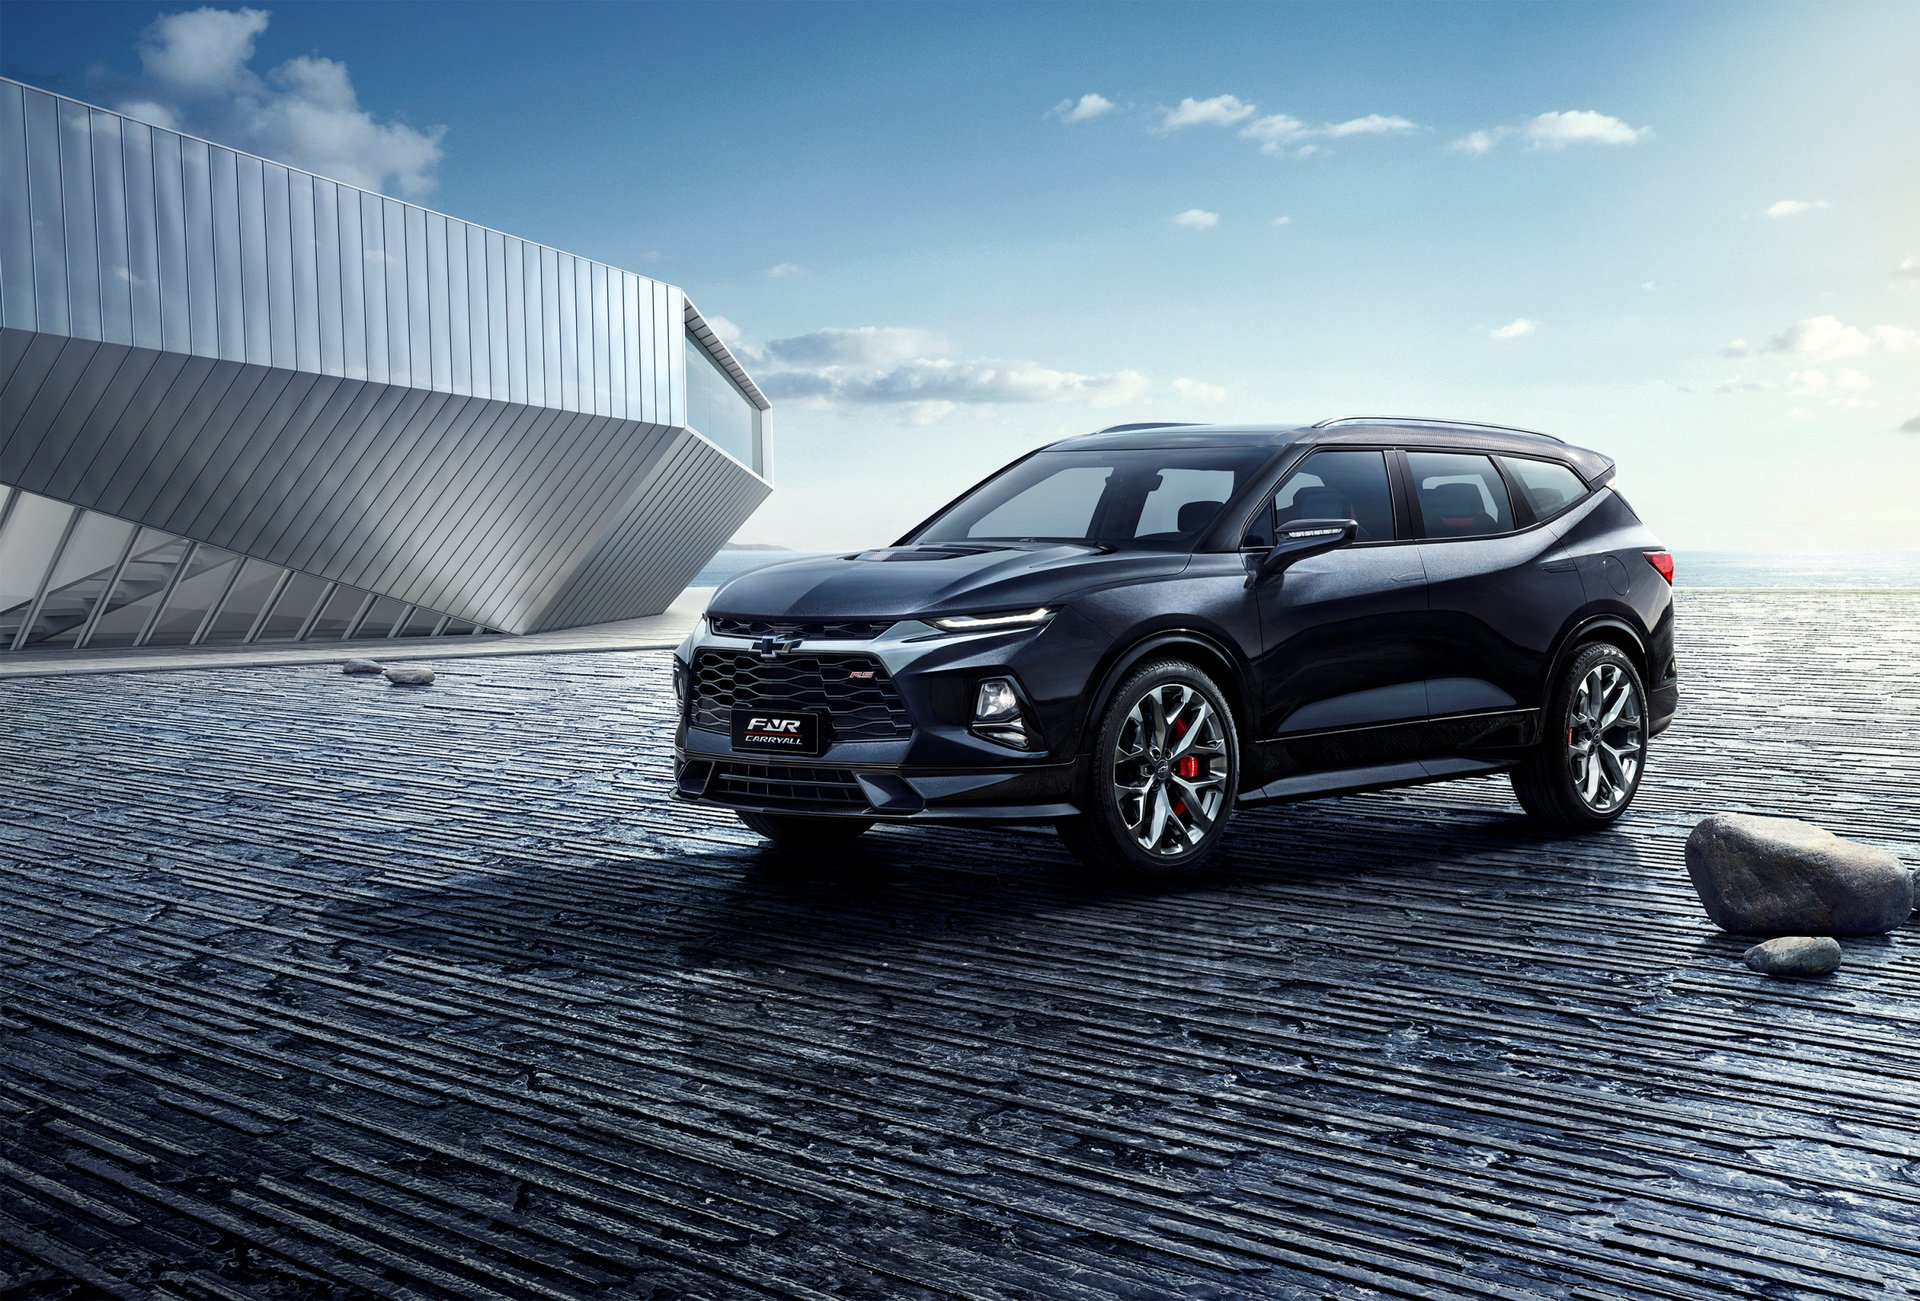 273cd2a9-chevrolet-new-models-unveiled-guangzhou-2018-1